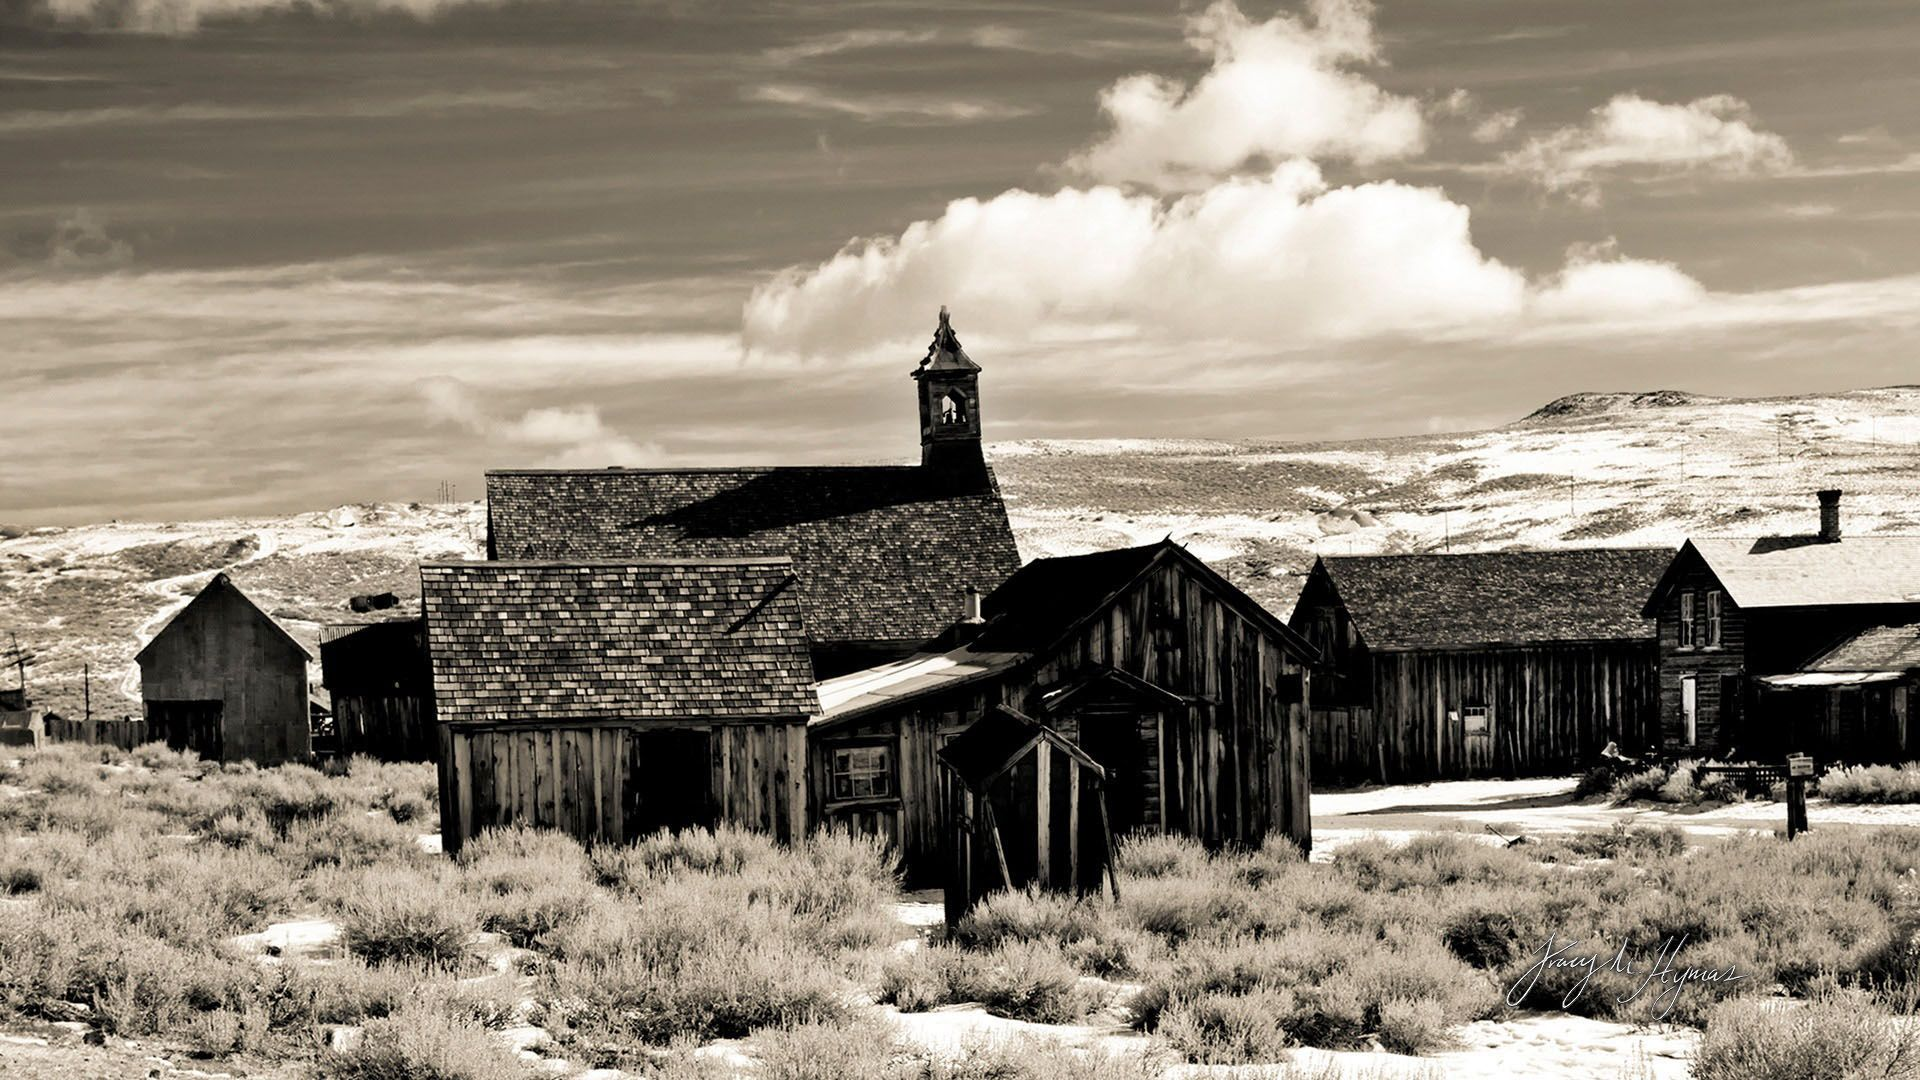 Ghost Town Wallpaper Ghost Town Desert Black And White 1920x1080 Download Hd Wallpaper Wallpapertip